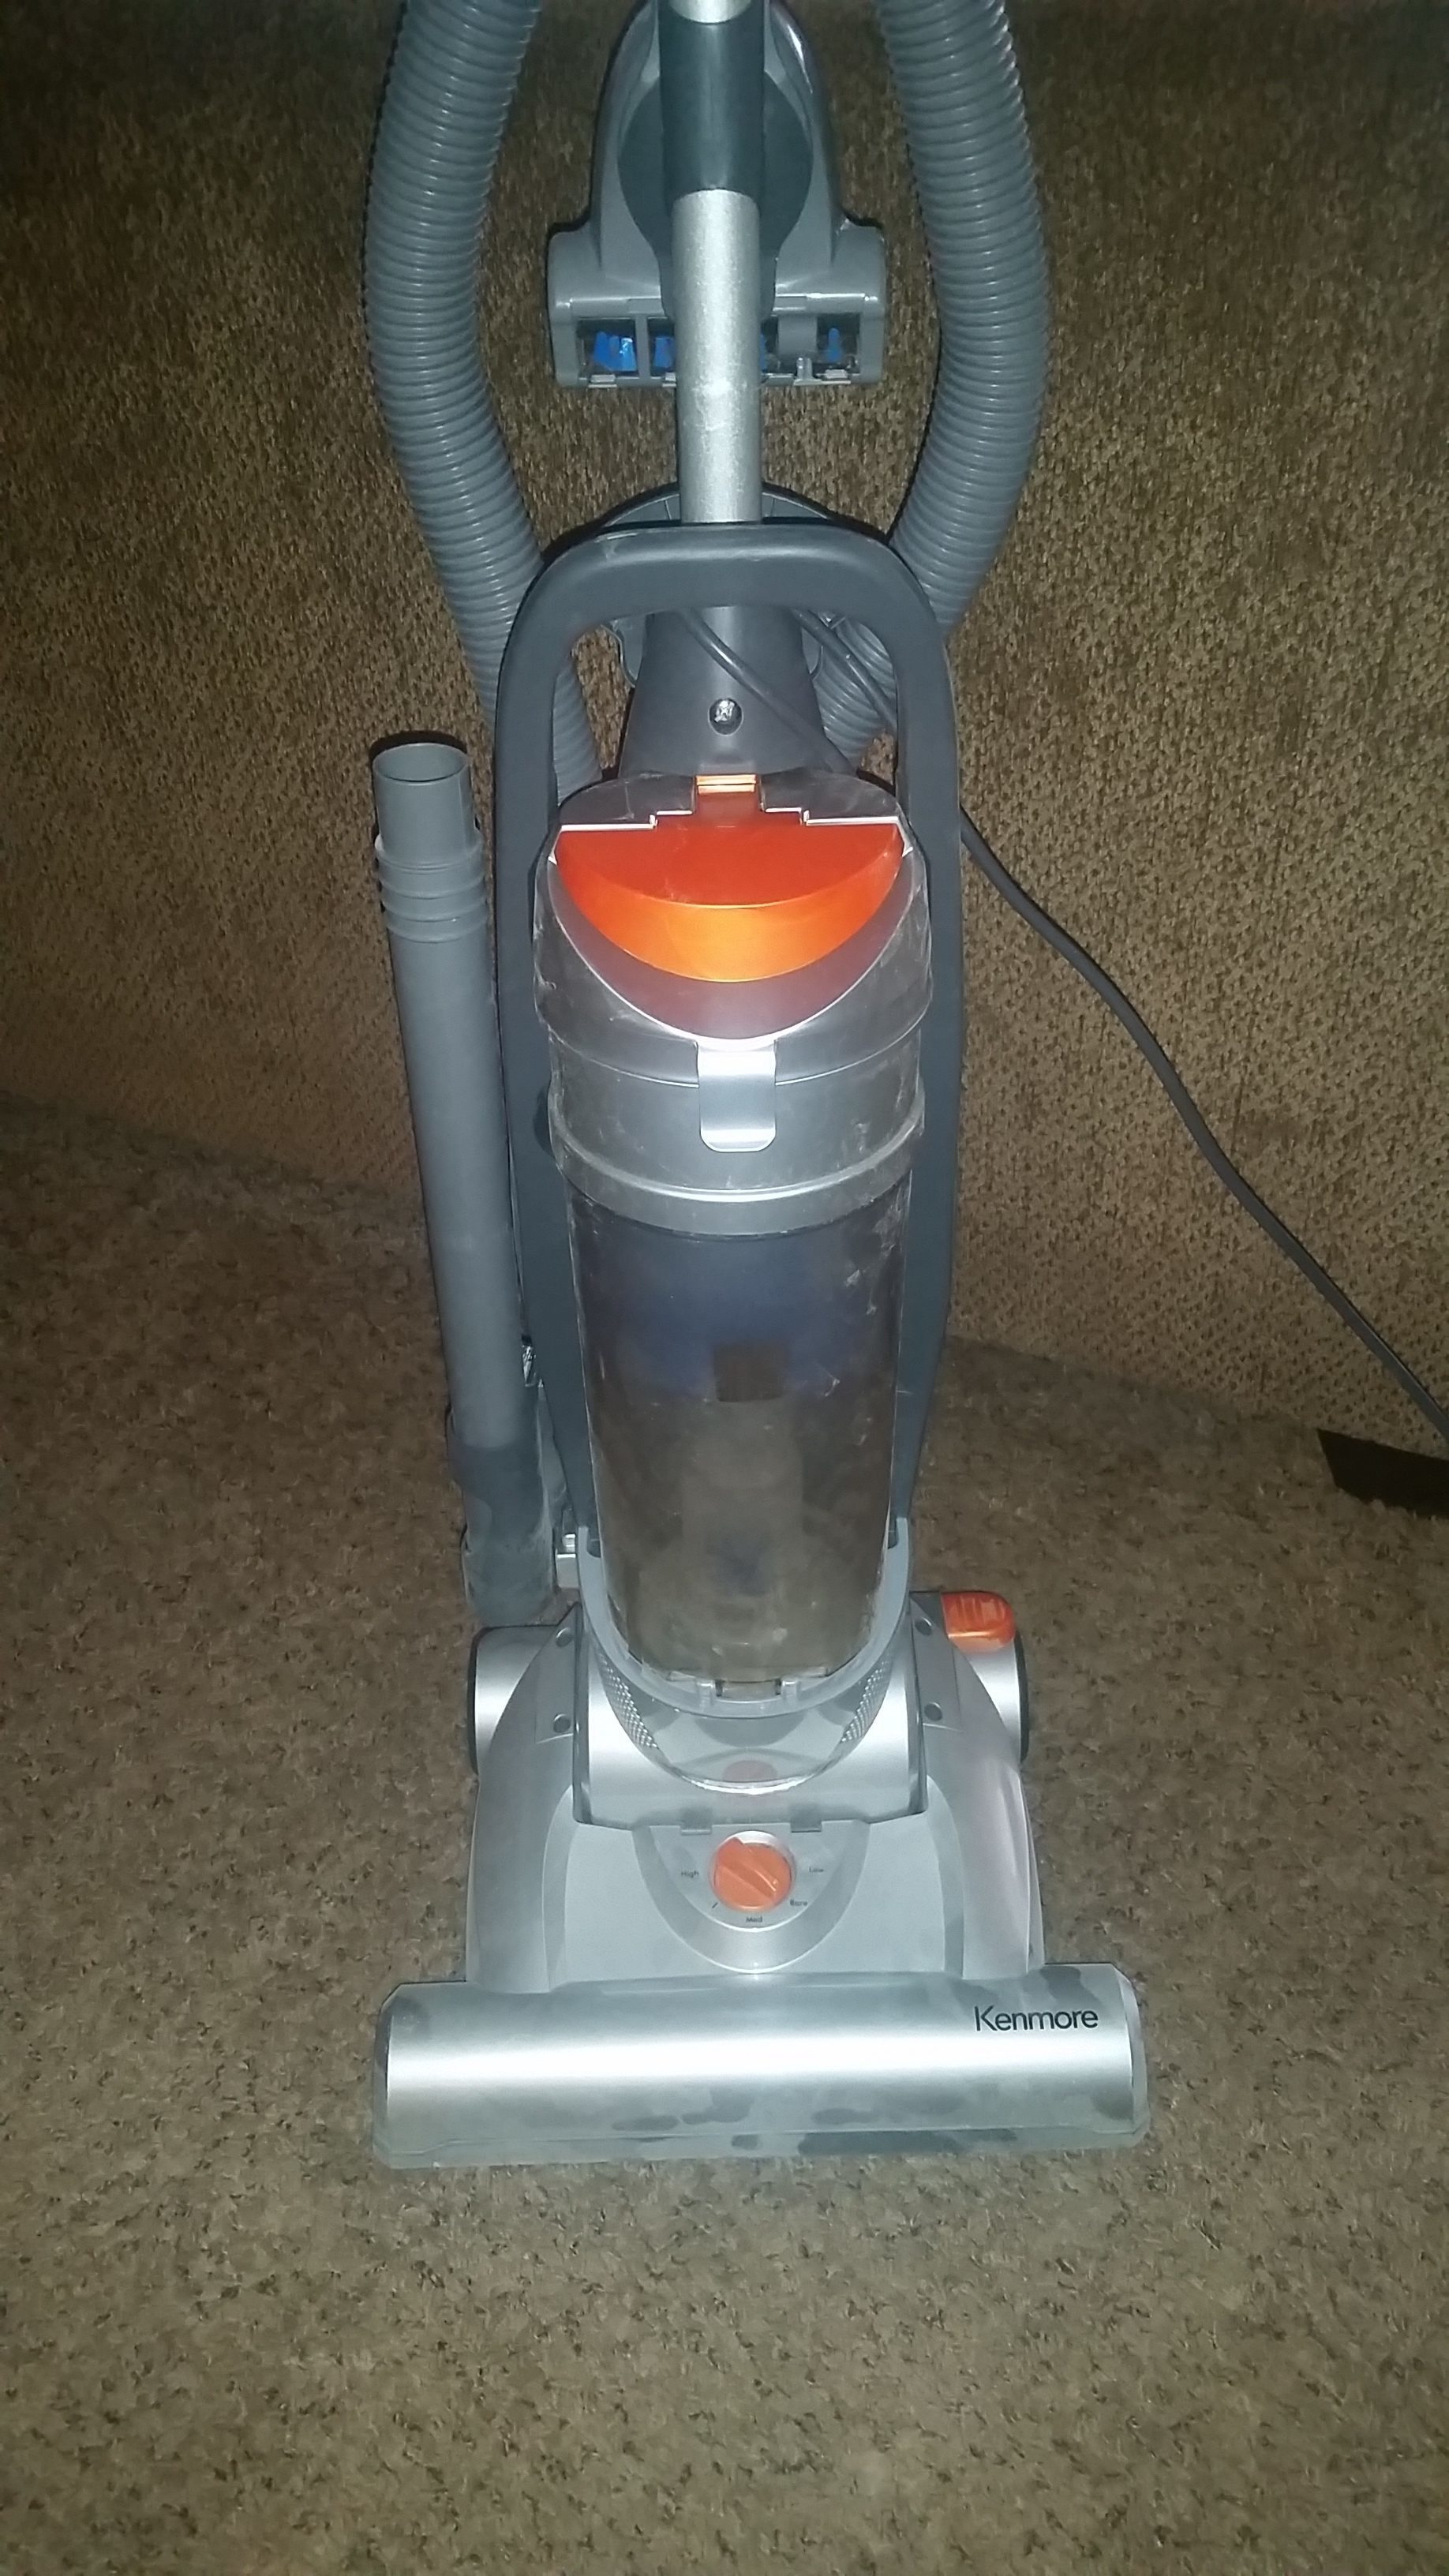 hight resolution of pictures of sears vacuum upright cleaners